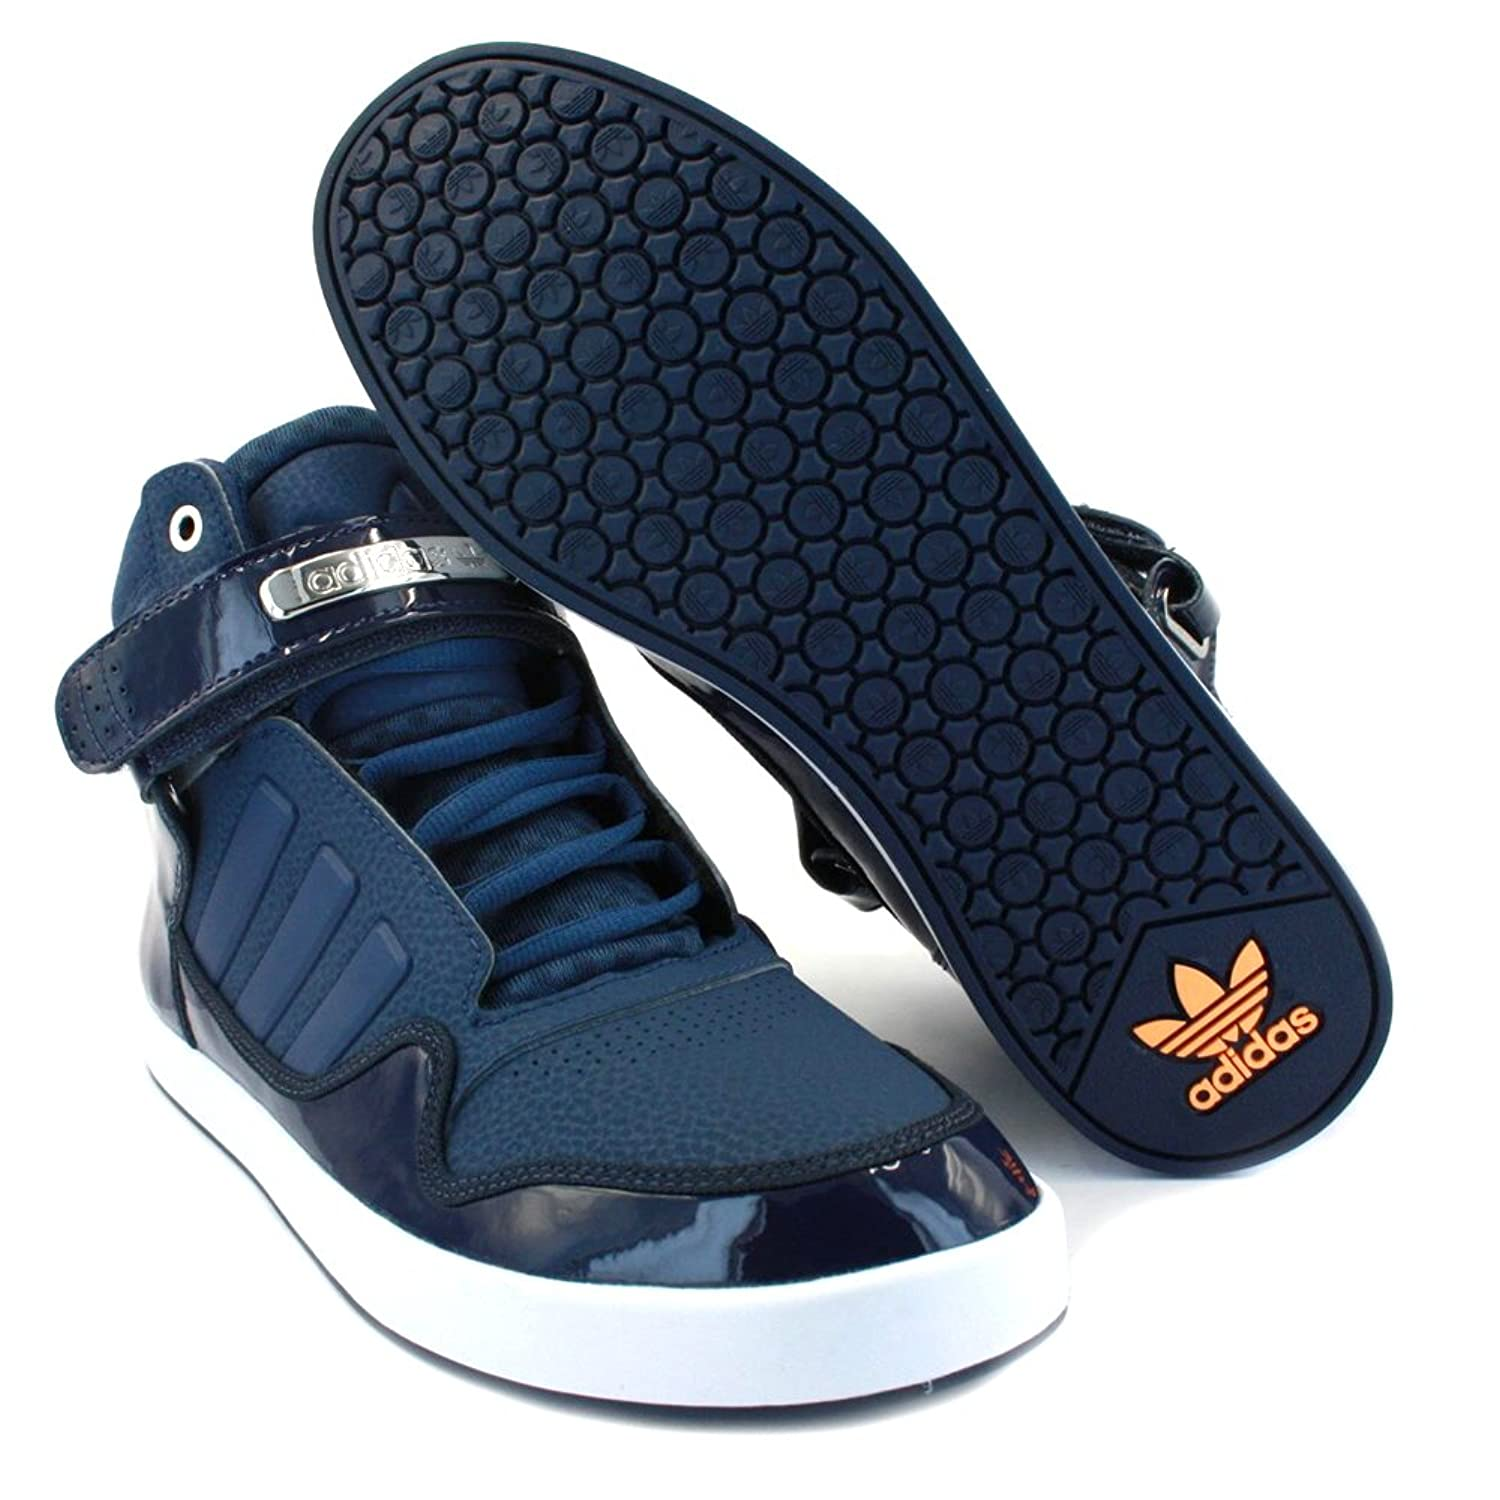 Adidas Originals Adi Rise 2.0 Mens Leather Trainers Navy White - 8:  Amazon.co.uk: Shoes & Bags